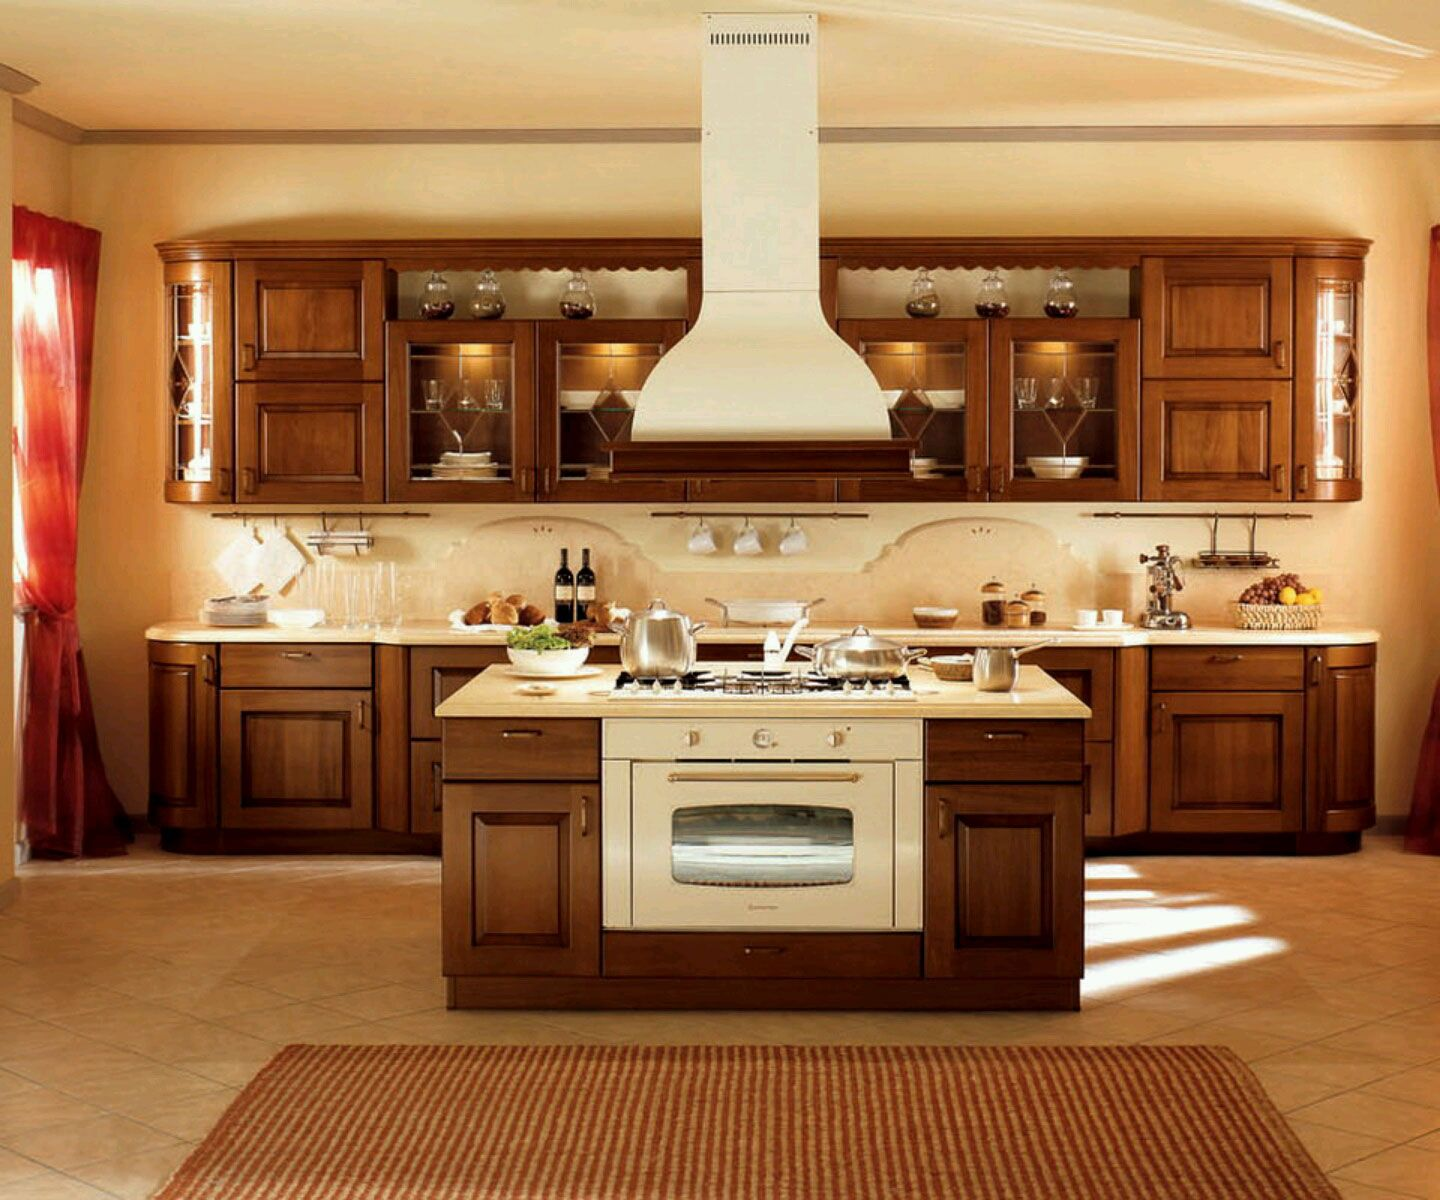 Genial Compact Island With Cooktop And Oven Ideas With Rectangular Rug Also Trendy  Wood Kitchen Cabinet Design